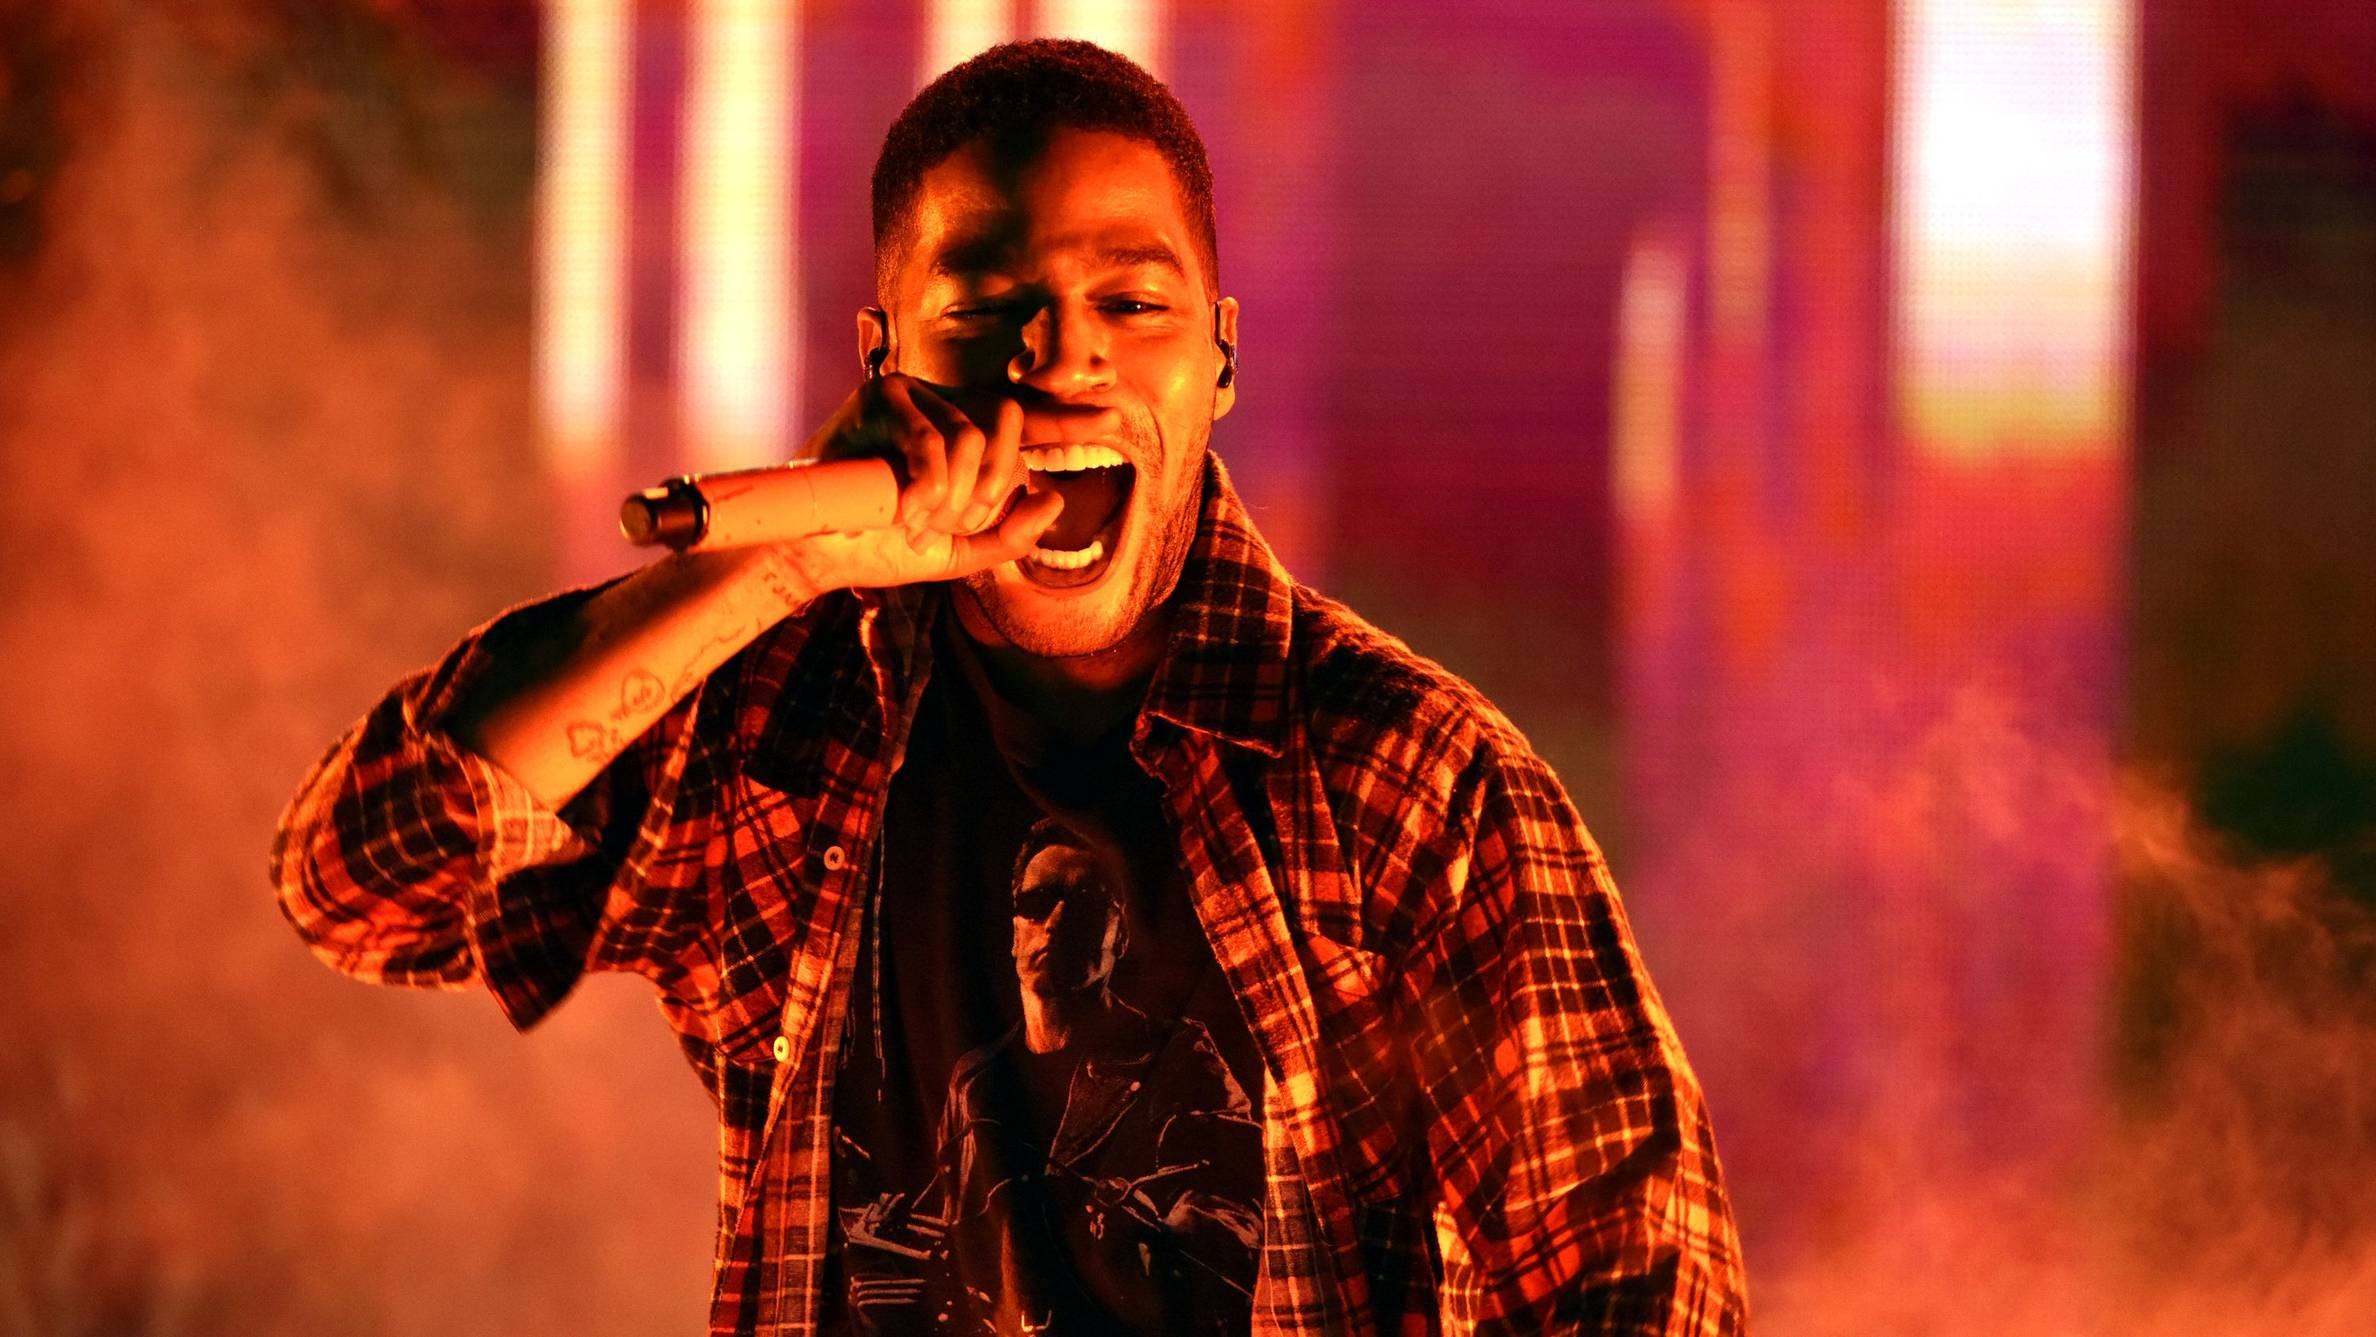 New Music Friday: Kid Cudi, King Von And More